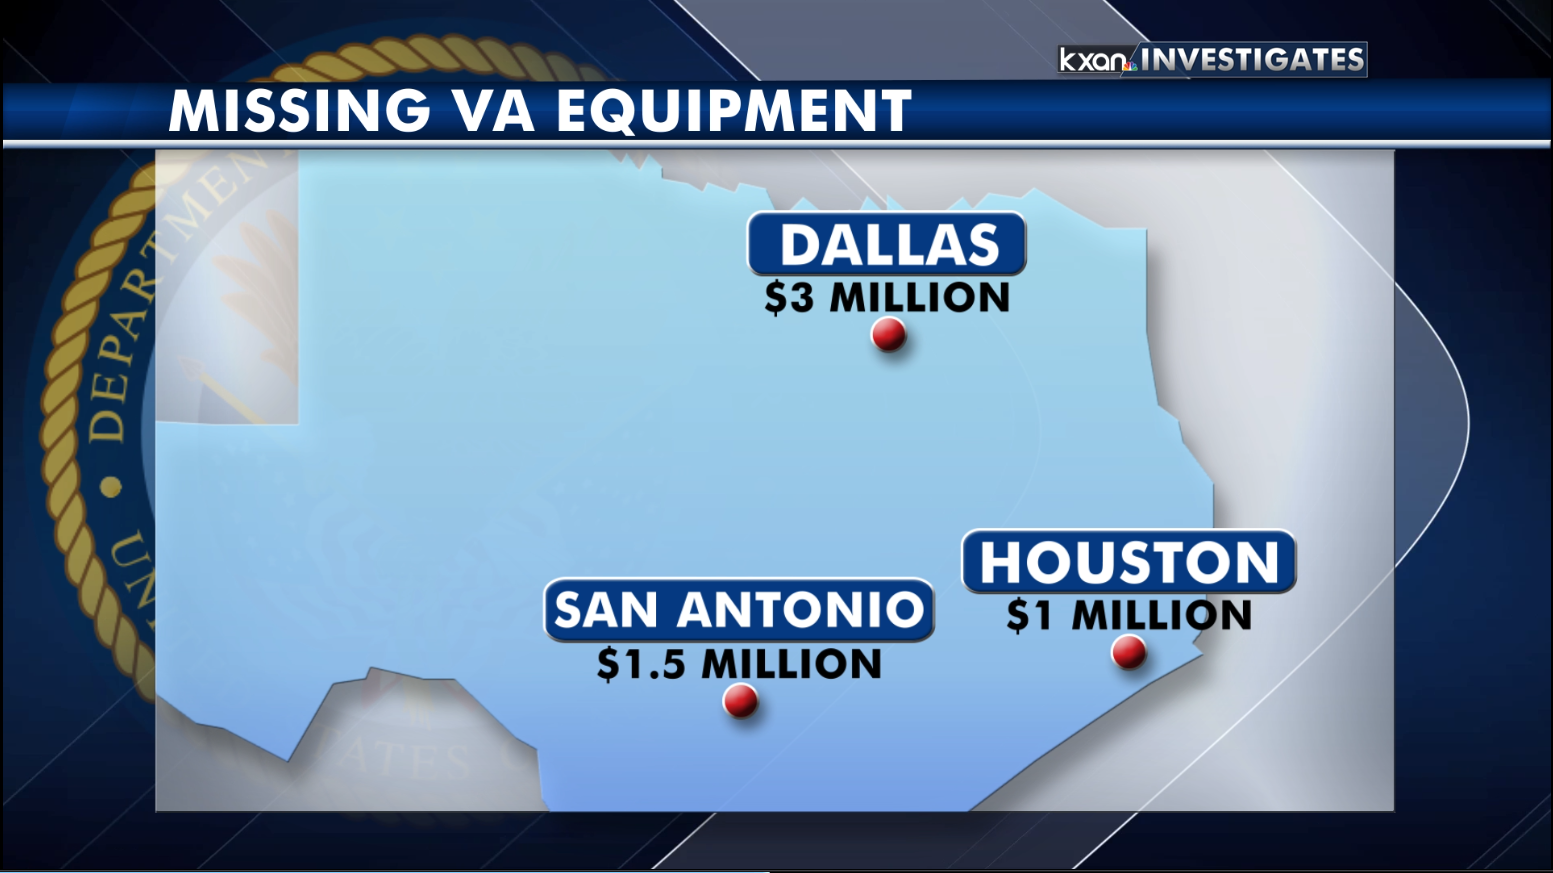 Records obtained by KXAN shows the totals for missing equipment from VA locations statewide. (KXAN Photo)